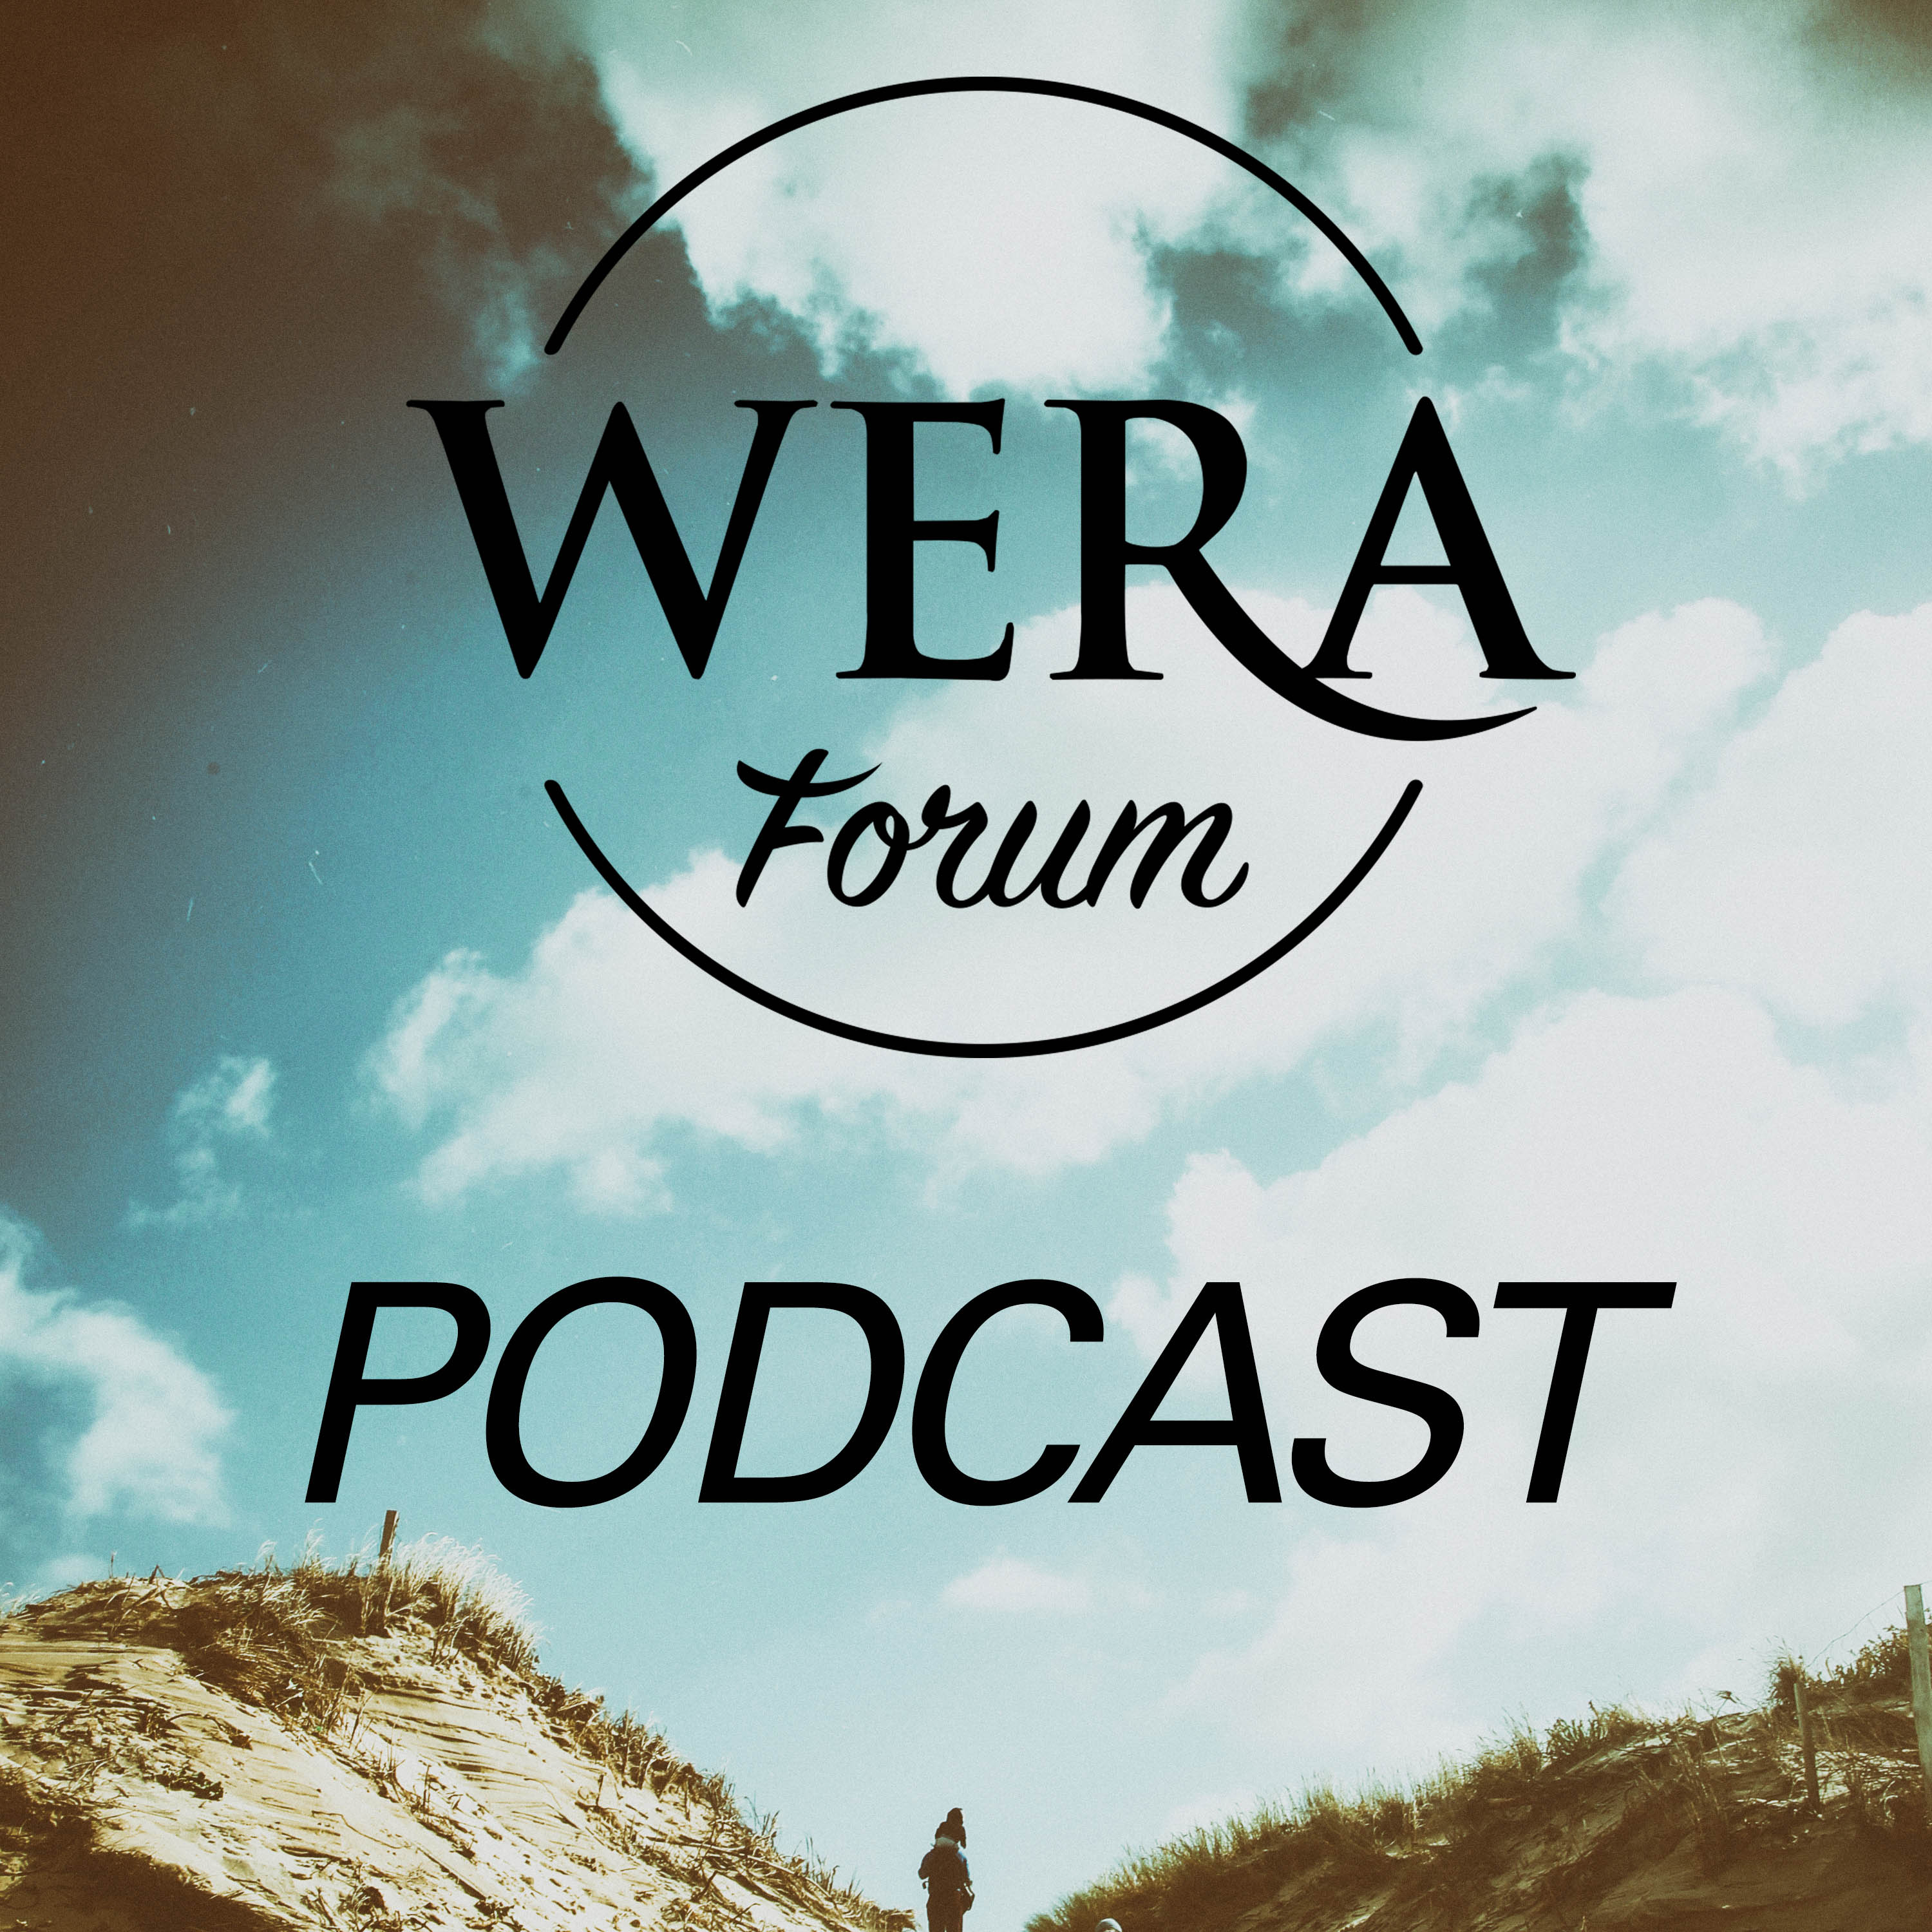 Wera Forum Podcast